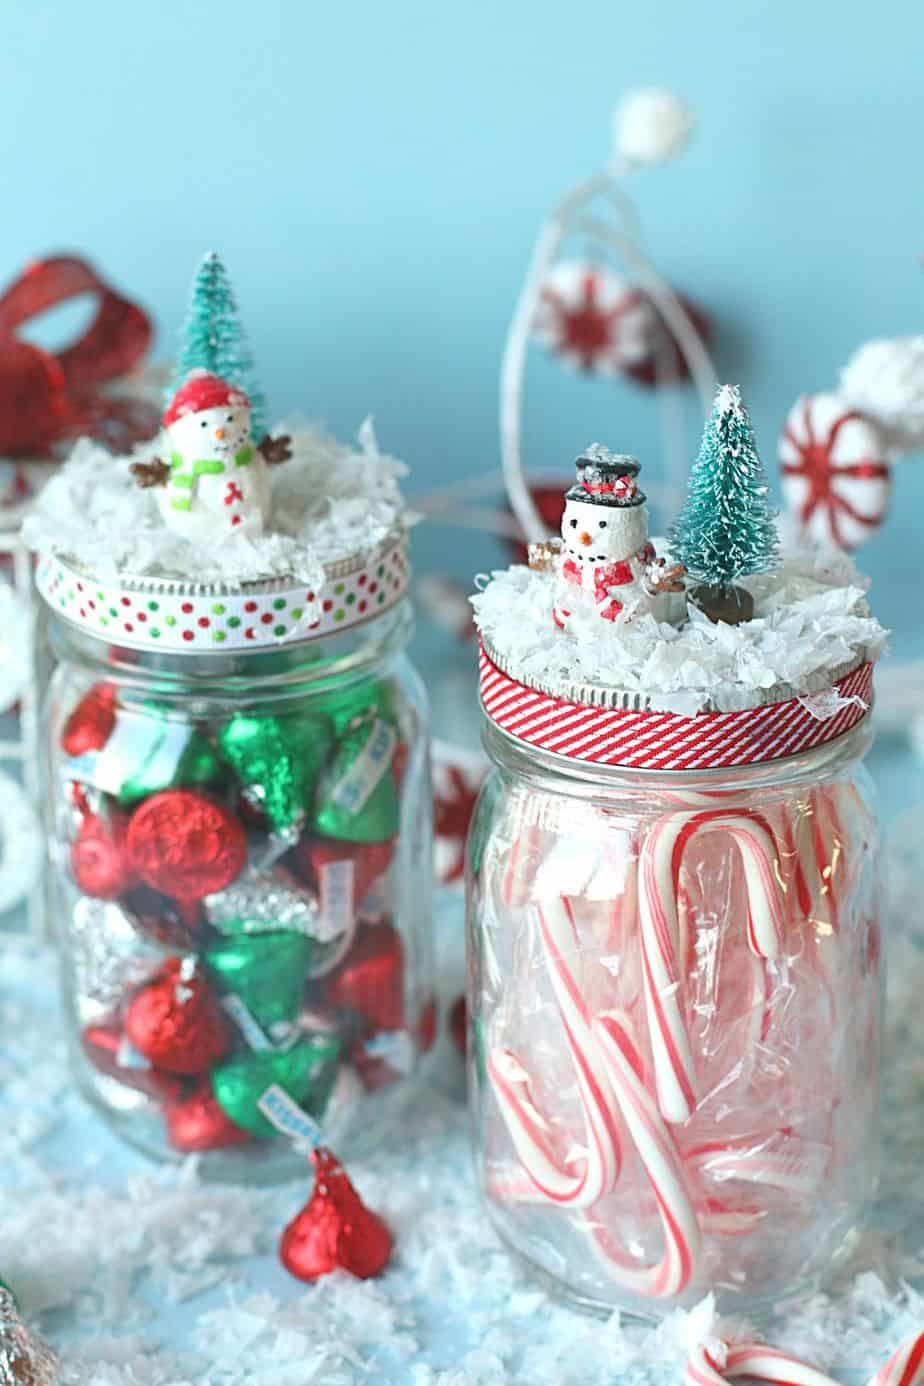 Spread some sweet cheer to friends and family with these DIY Christmas Mason Jar Gifts. Fill these treat jars with Christmas candy or a favorite snack. Mason jar gifts are easy to make and fun to give. #masonjarcraft #christmasgift #christmasmasonjargift